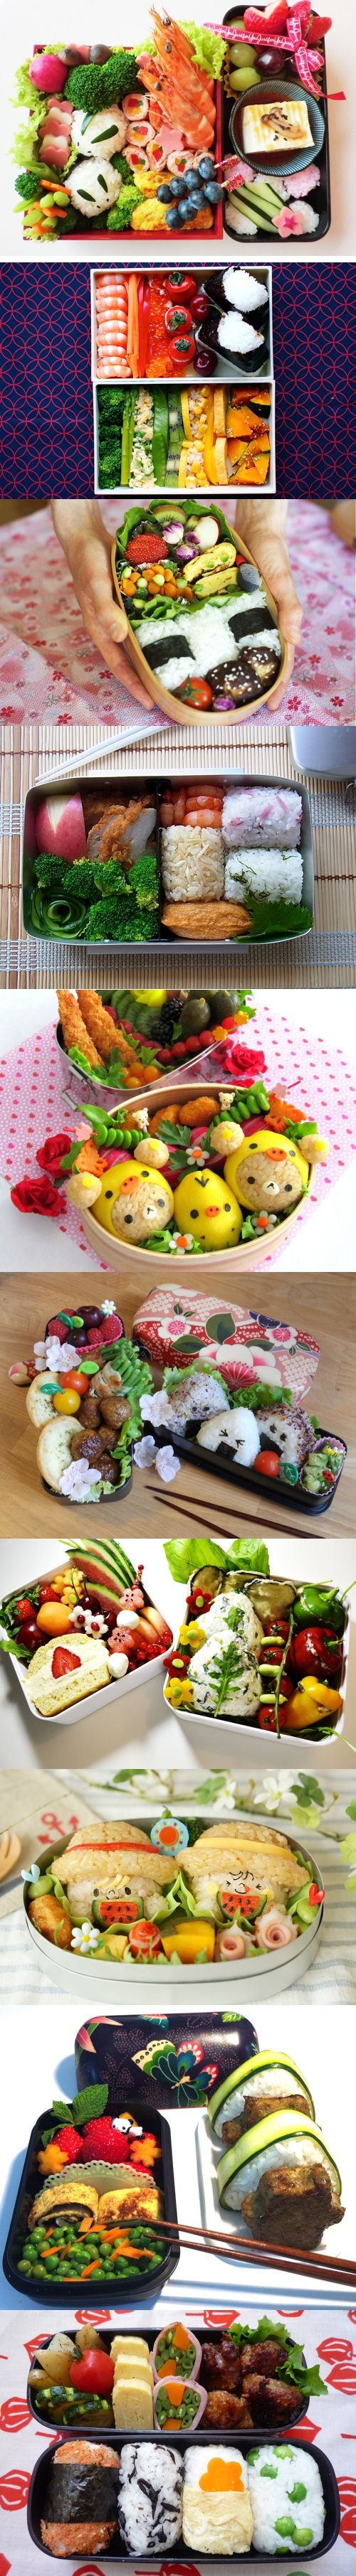 Bento 2012 Contest Top 10 finalists. Can you imagine the effort that goes into these?